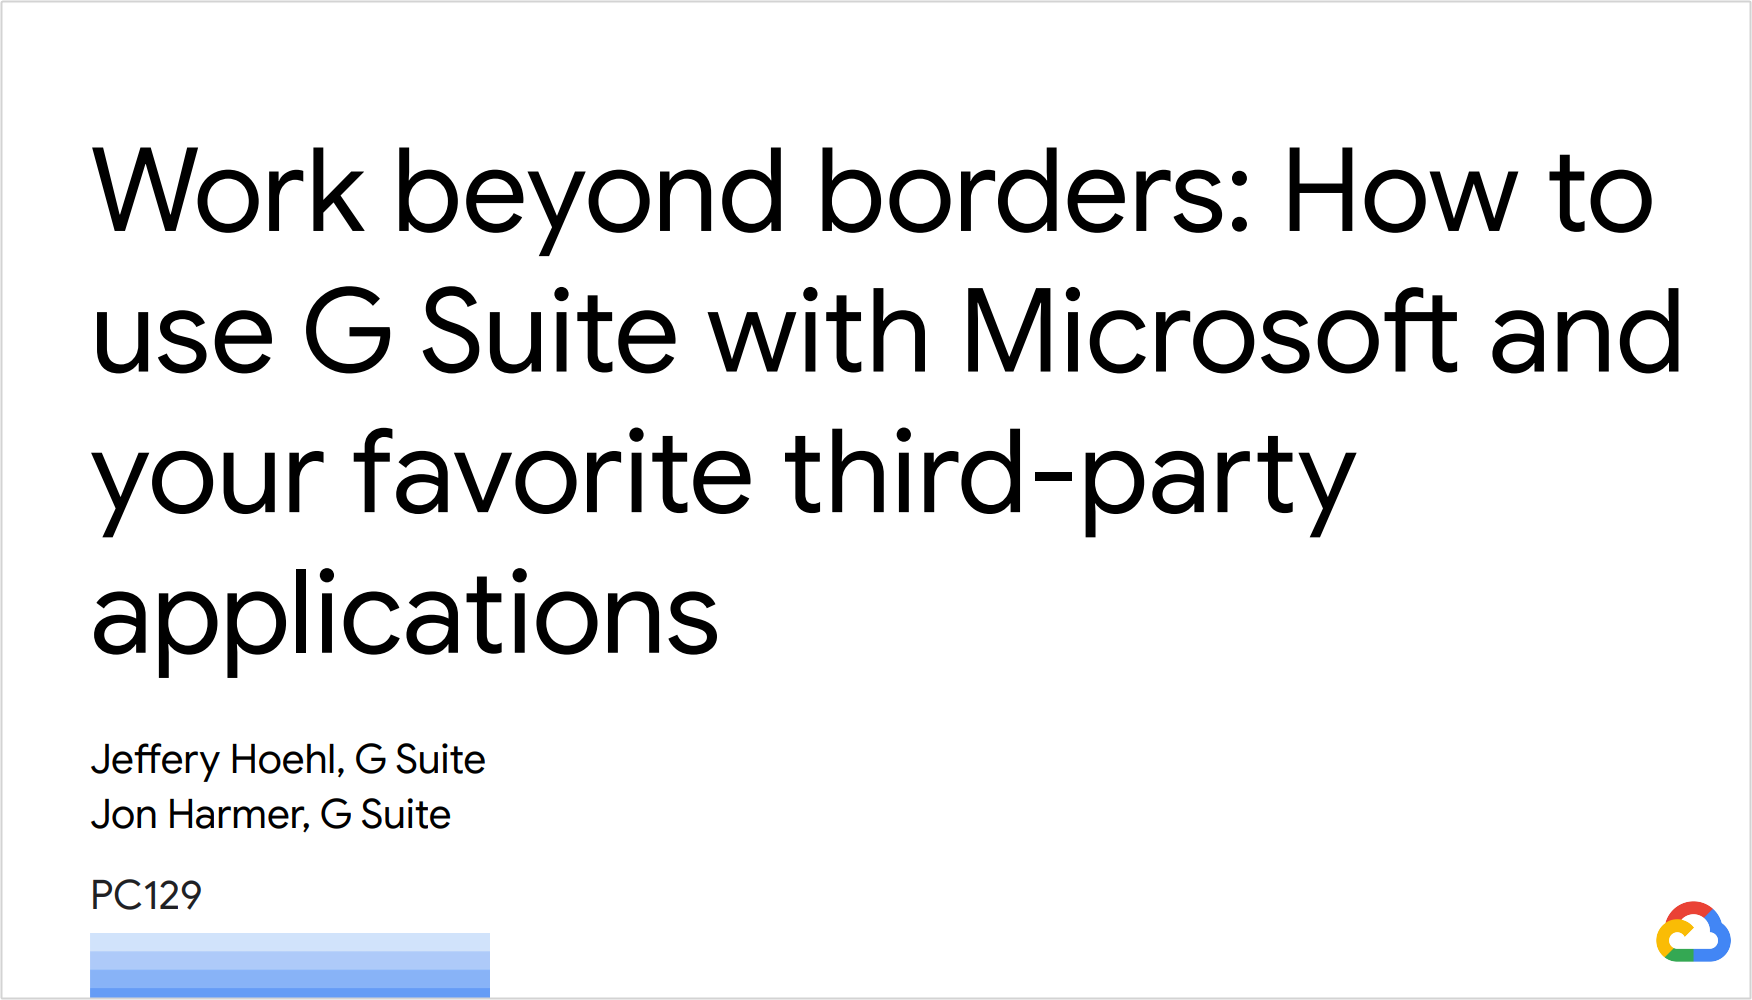 Work Beyond Borders: How to Use G Suite with Microsoft and Your Favorite Third-Party Applications